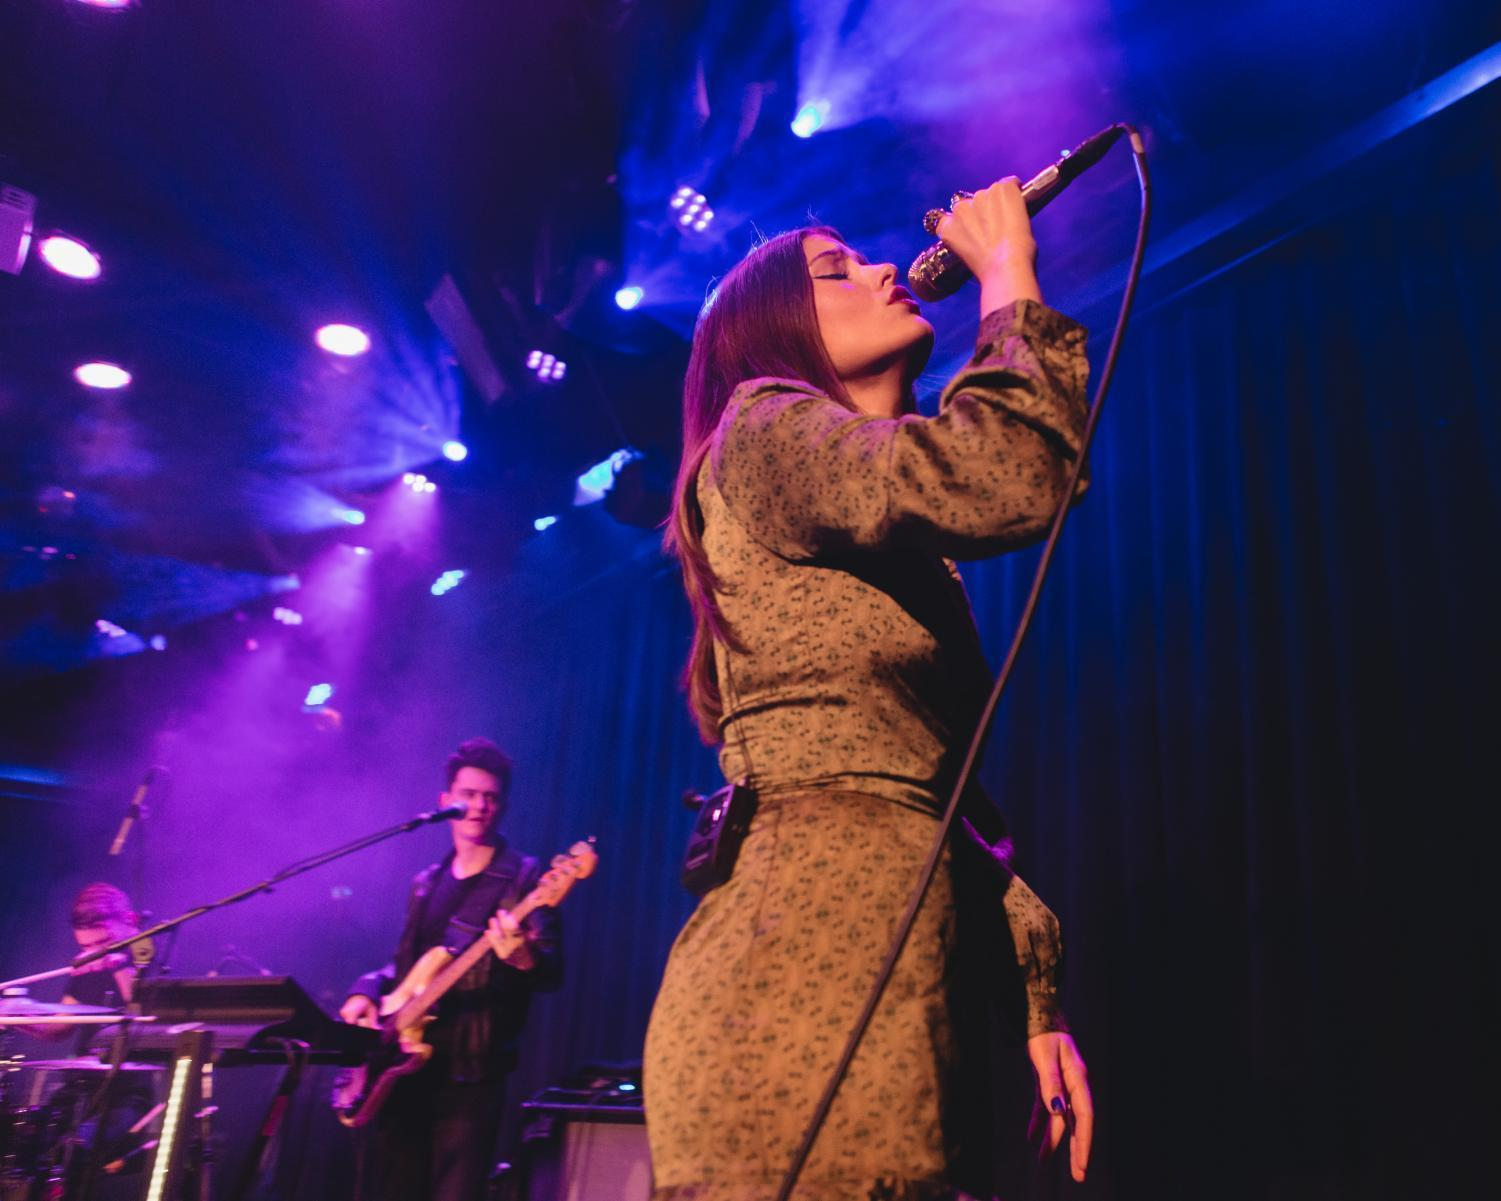 Swedish singer-songwriter LÉON performed at Le Poisson Rouge on Oct. 27.